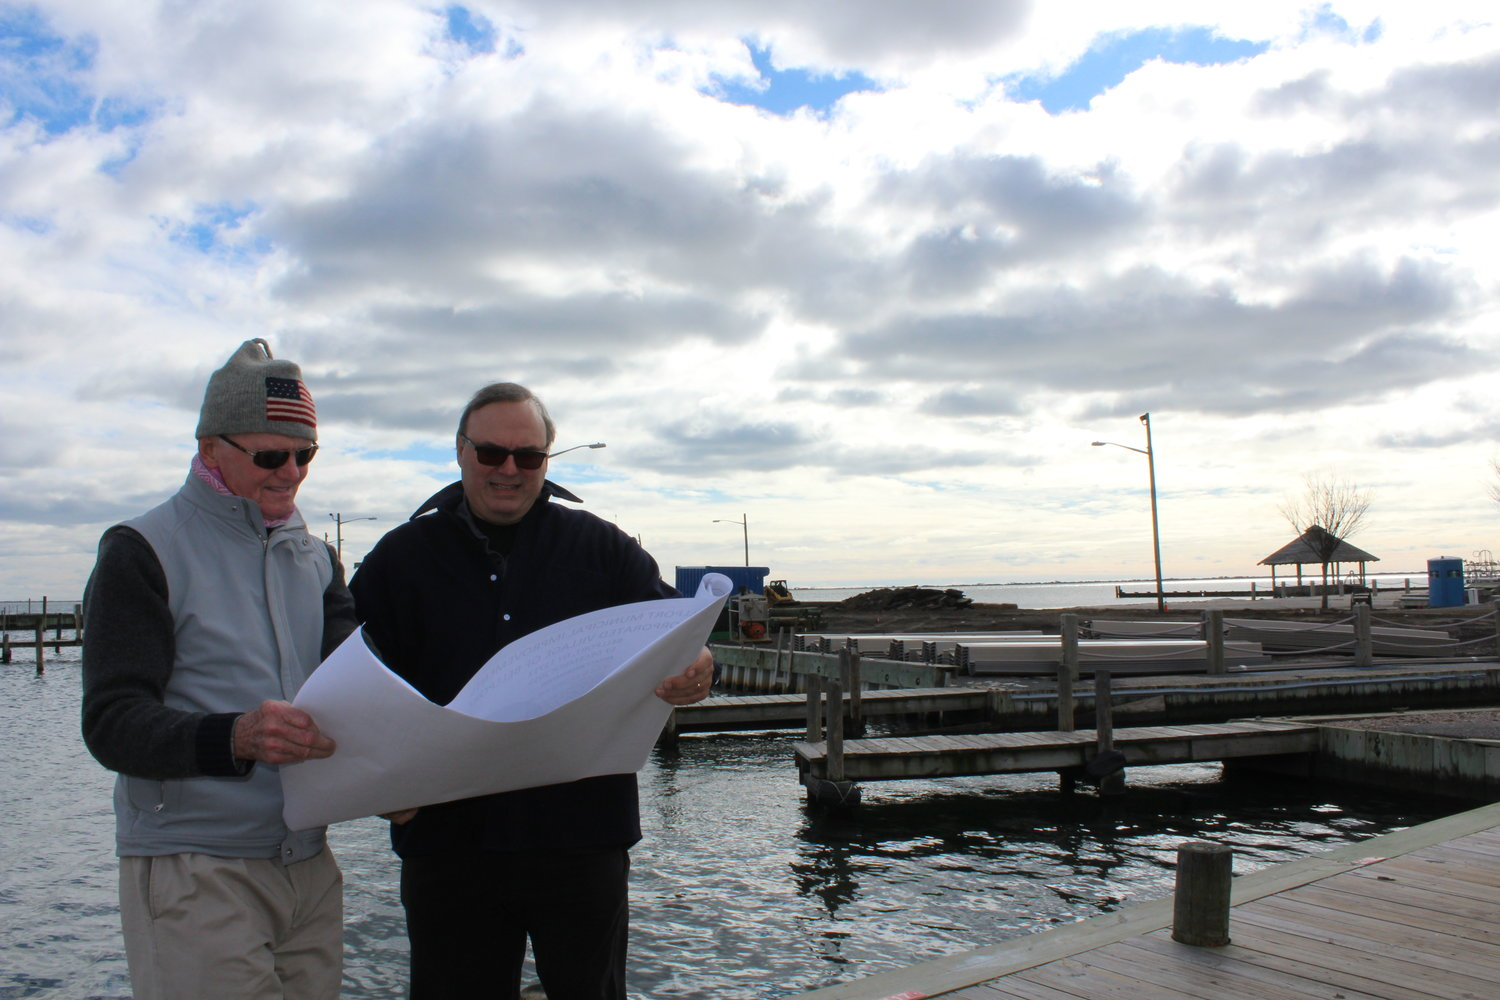 Bellport Mayor Ray Fell and Village Clerk John Kocay look over dock renovation plans that Terry Contracting will tackle.